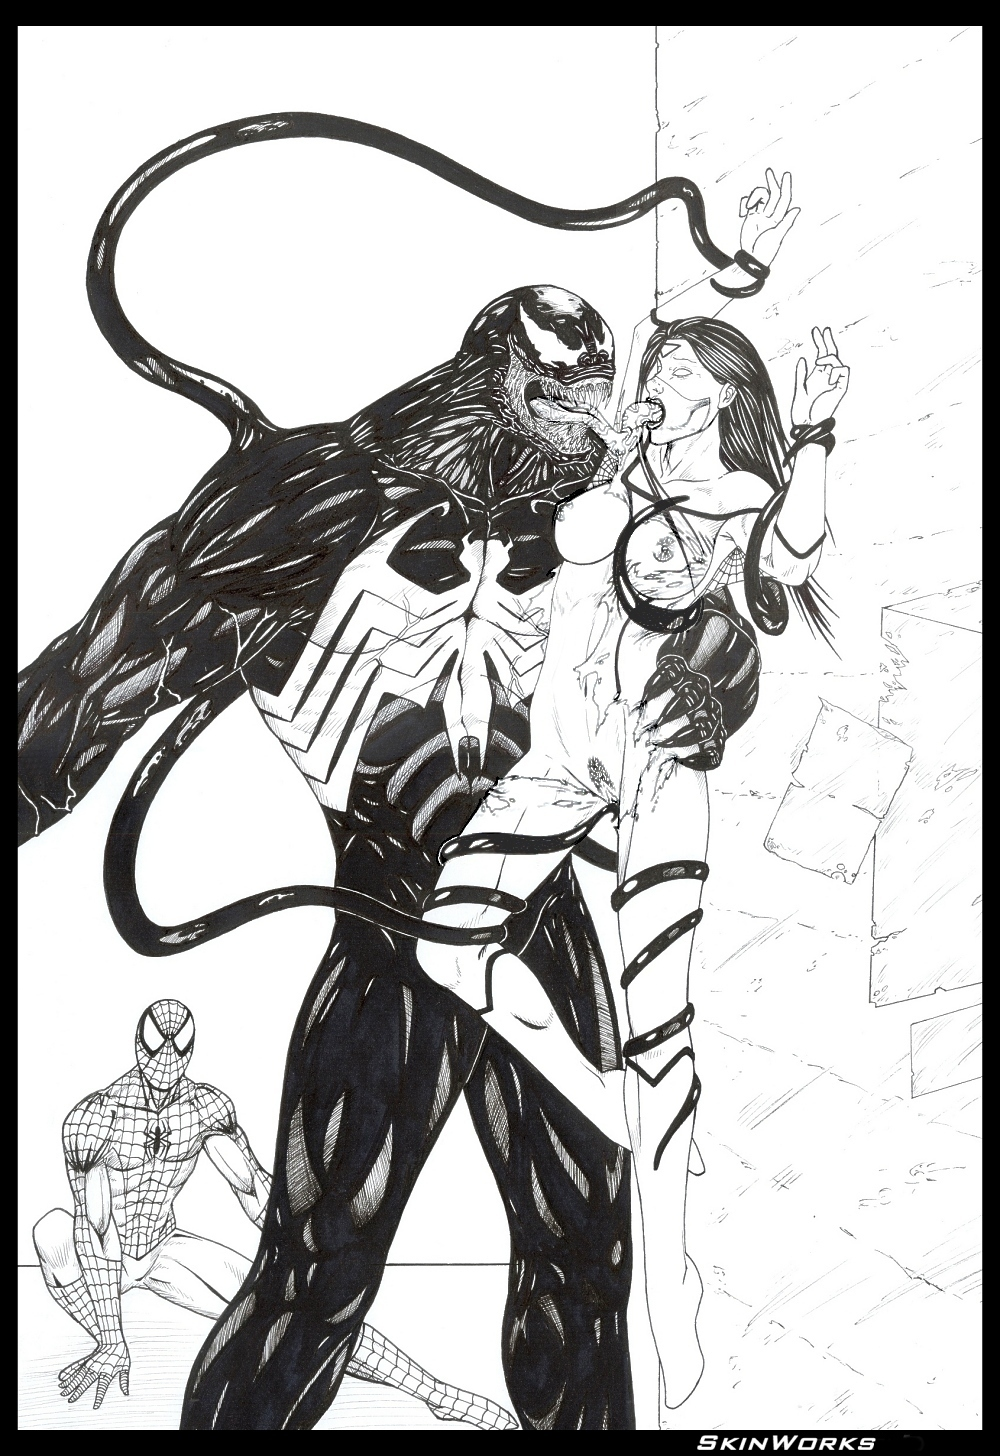 of shadows spider symbiote characters web man Mei ling zhou